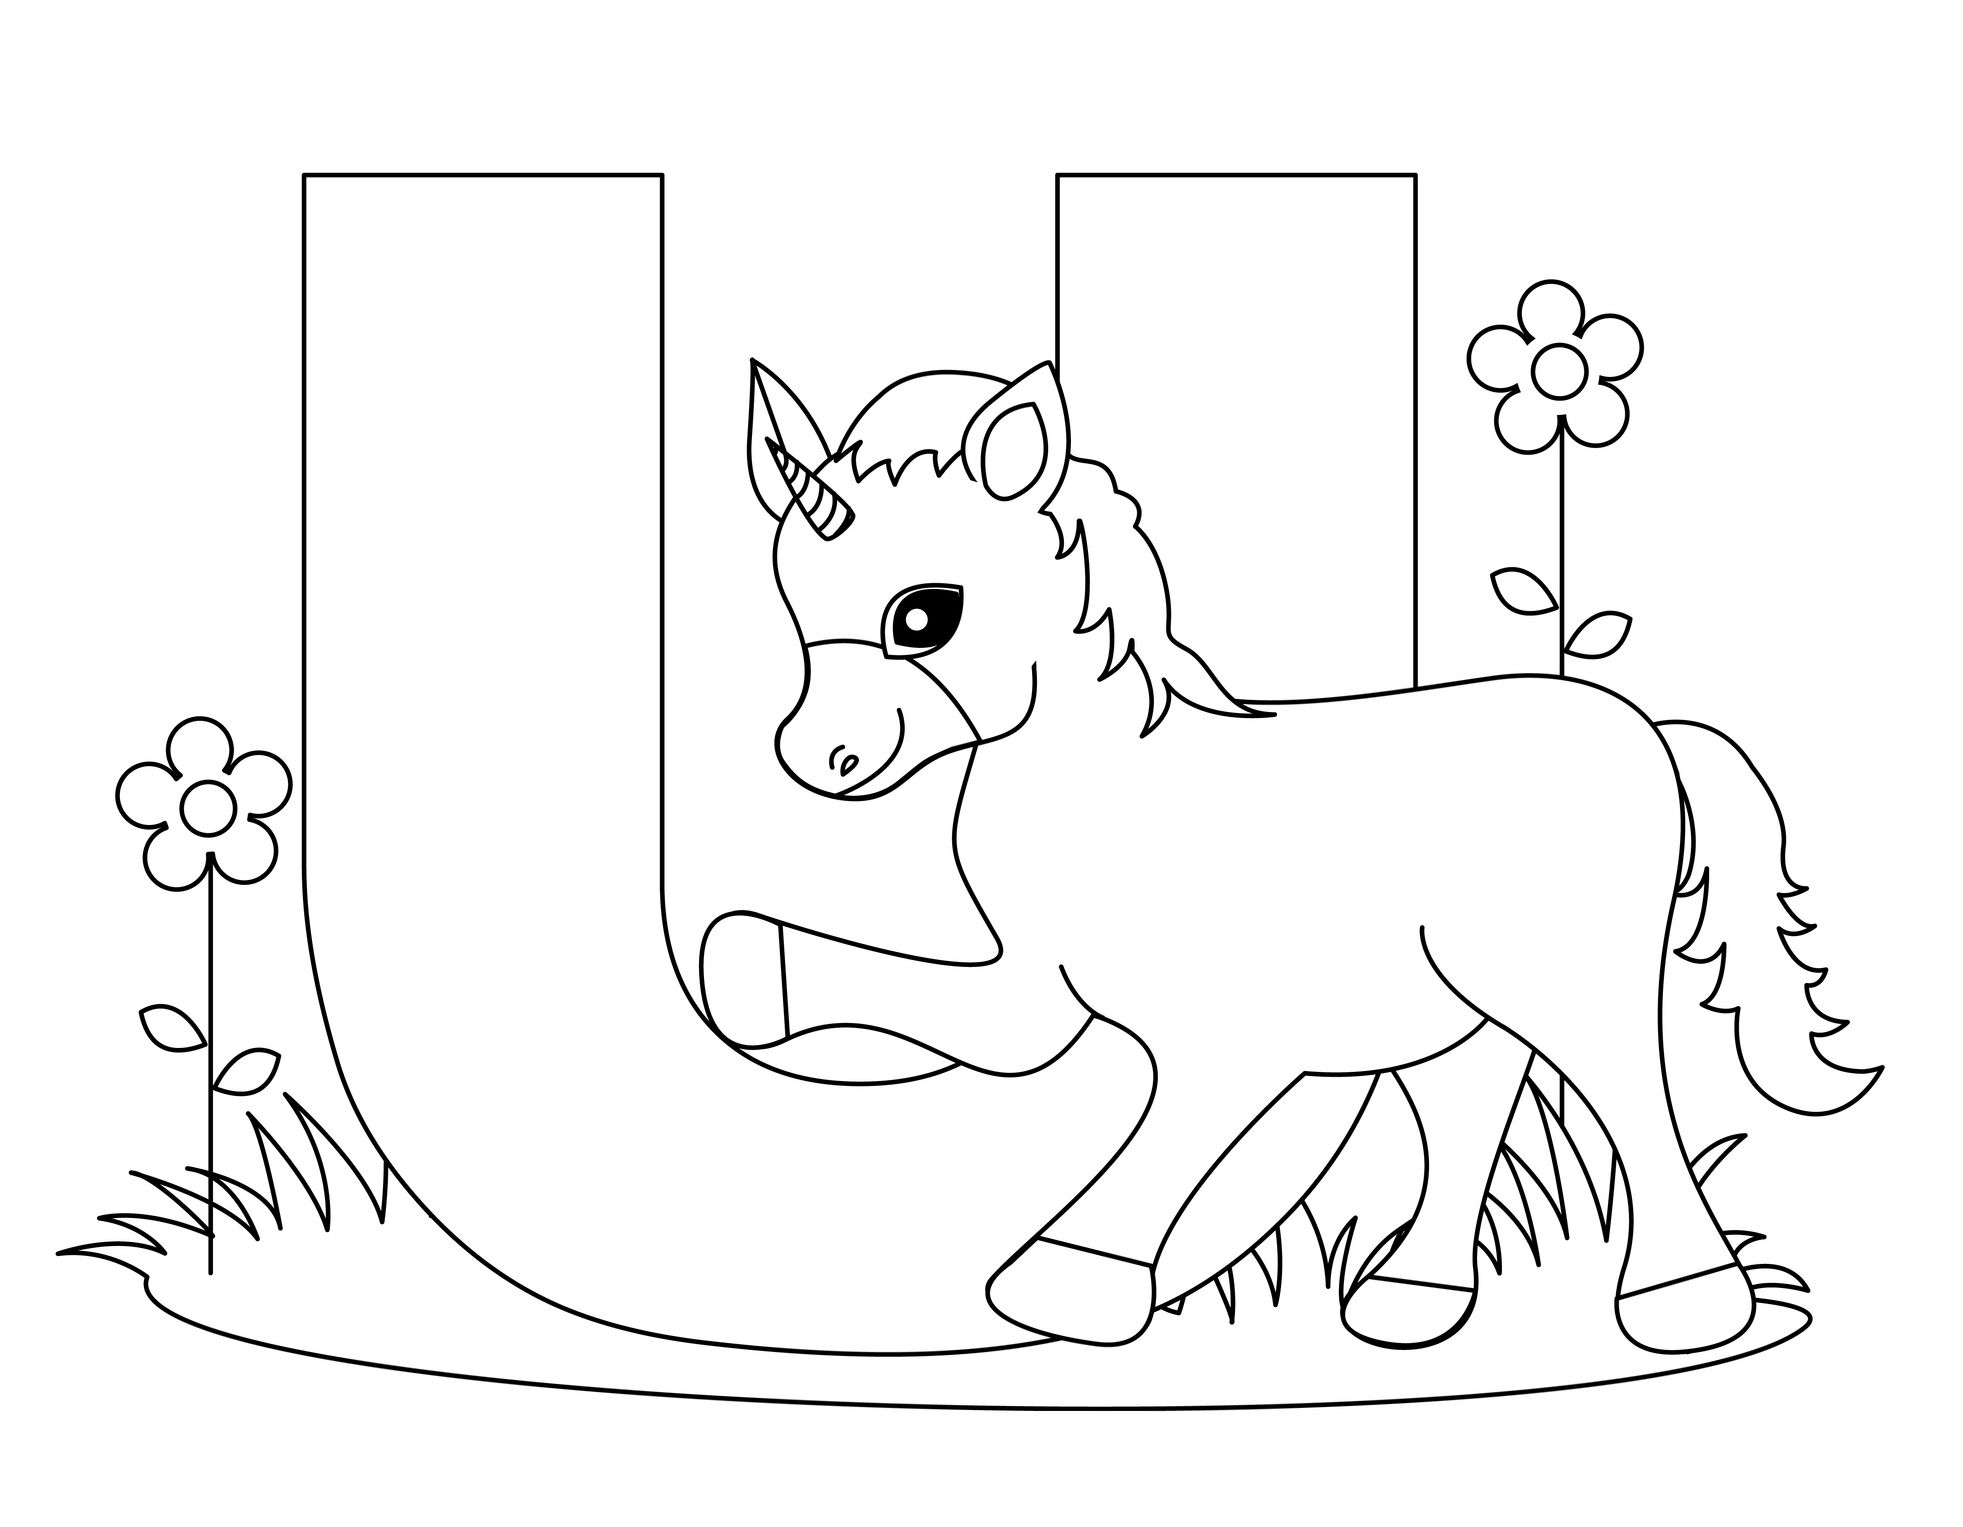 cool coloring pages of the alphabet Free Download | Színezők ...